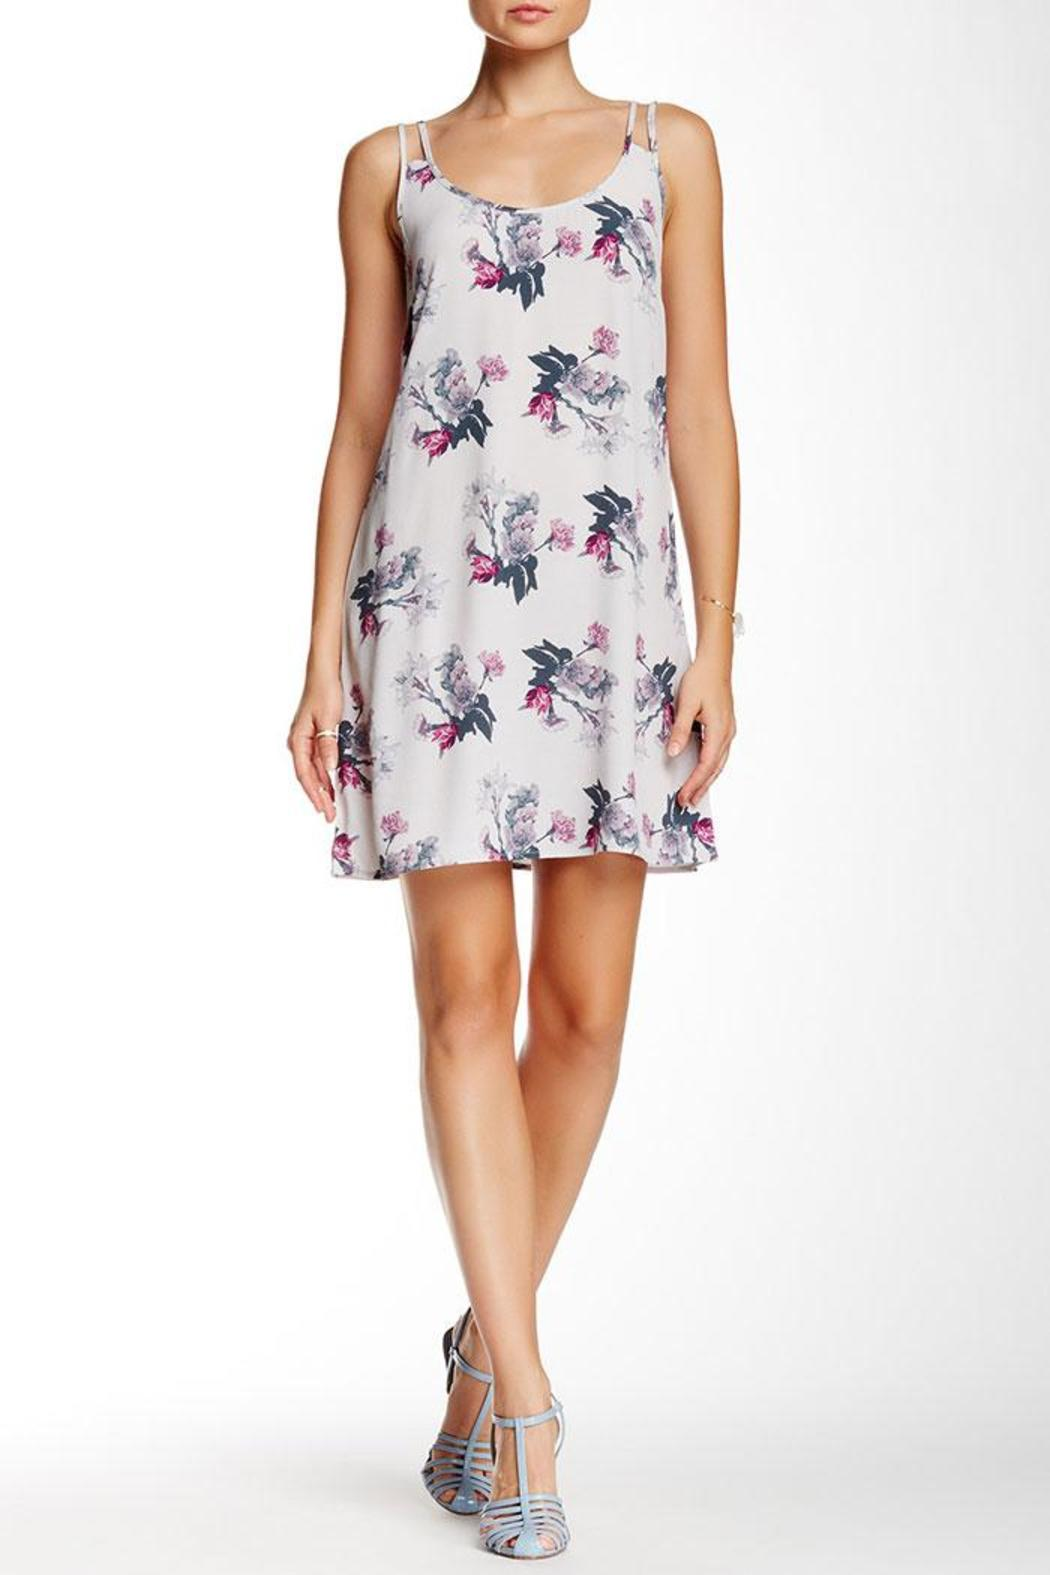 BB Dakota Floral Grey Dress - Main Image